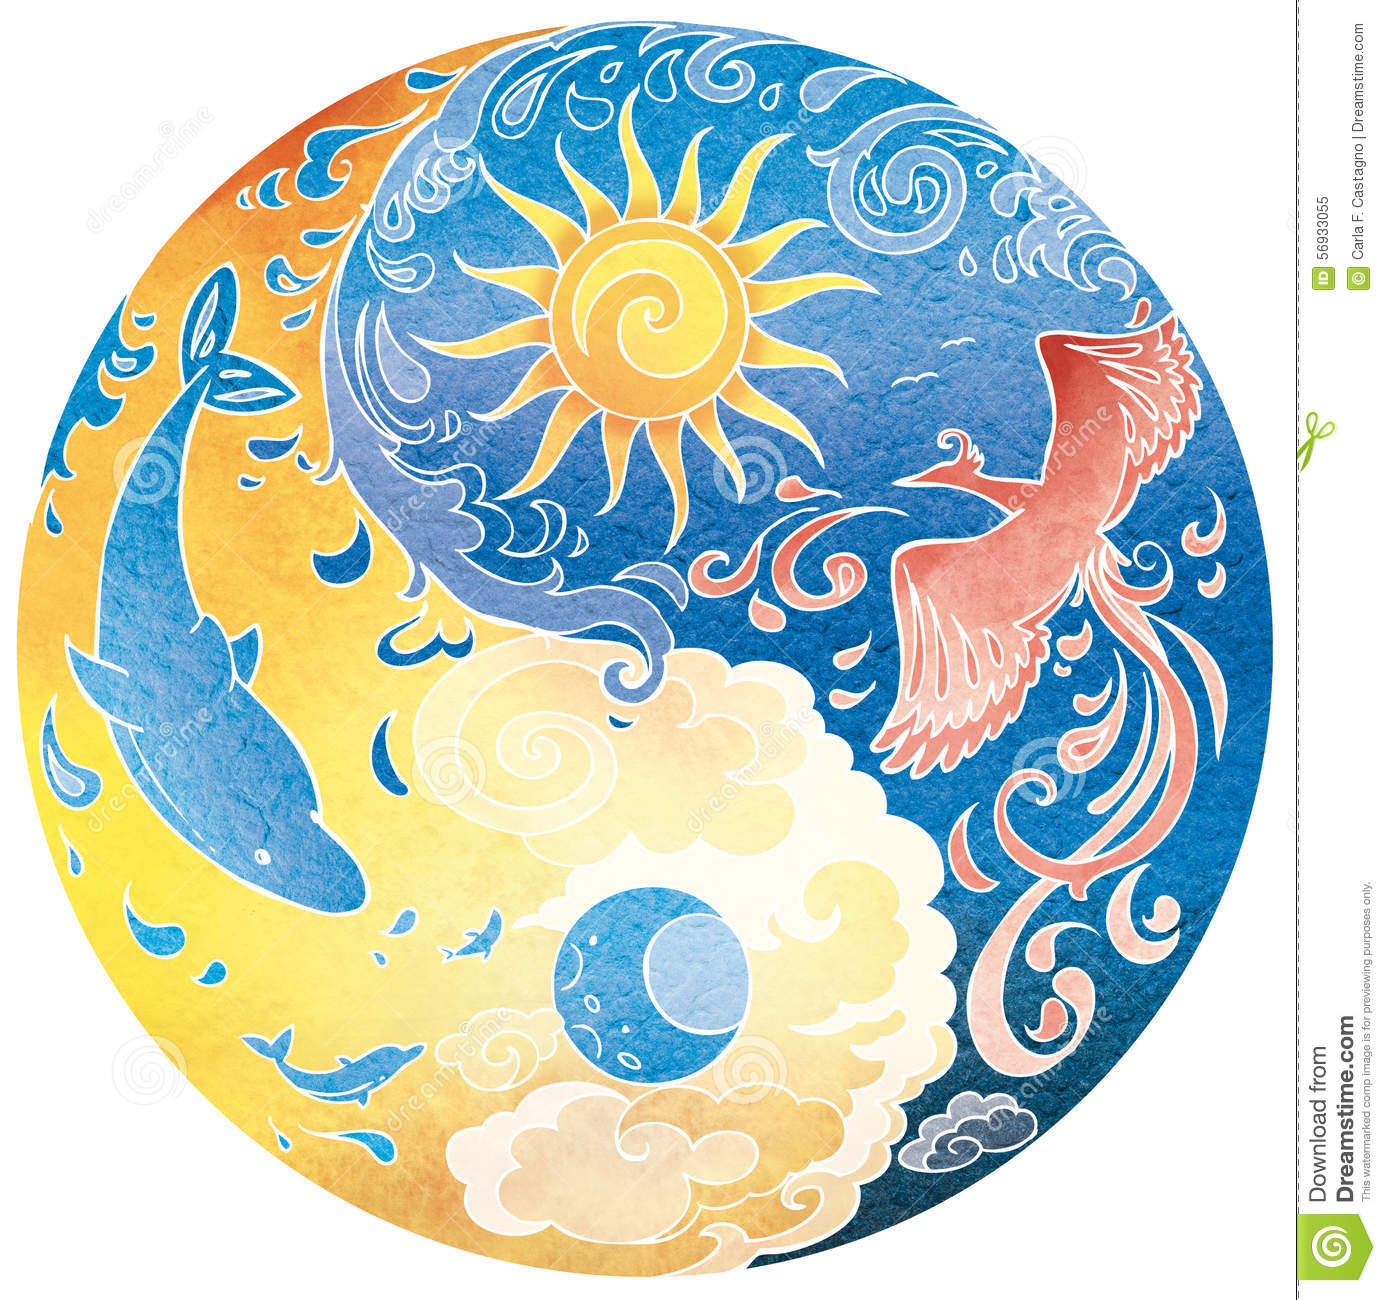 How to Relax With the Sun Meditation How to Relax With the Sun Meditation new pictures